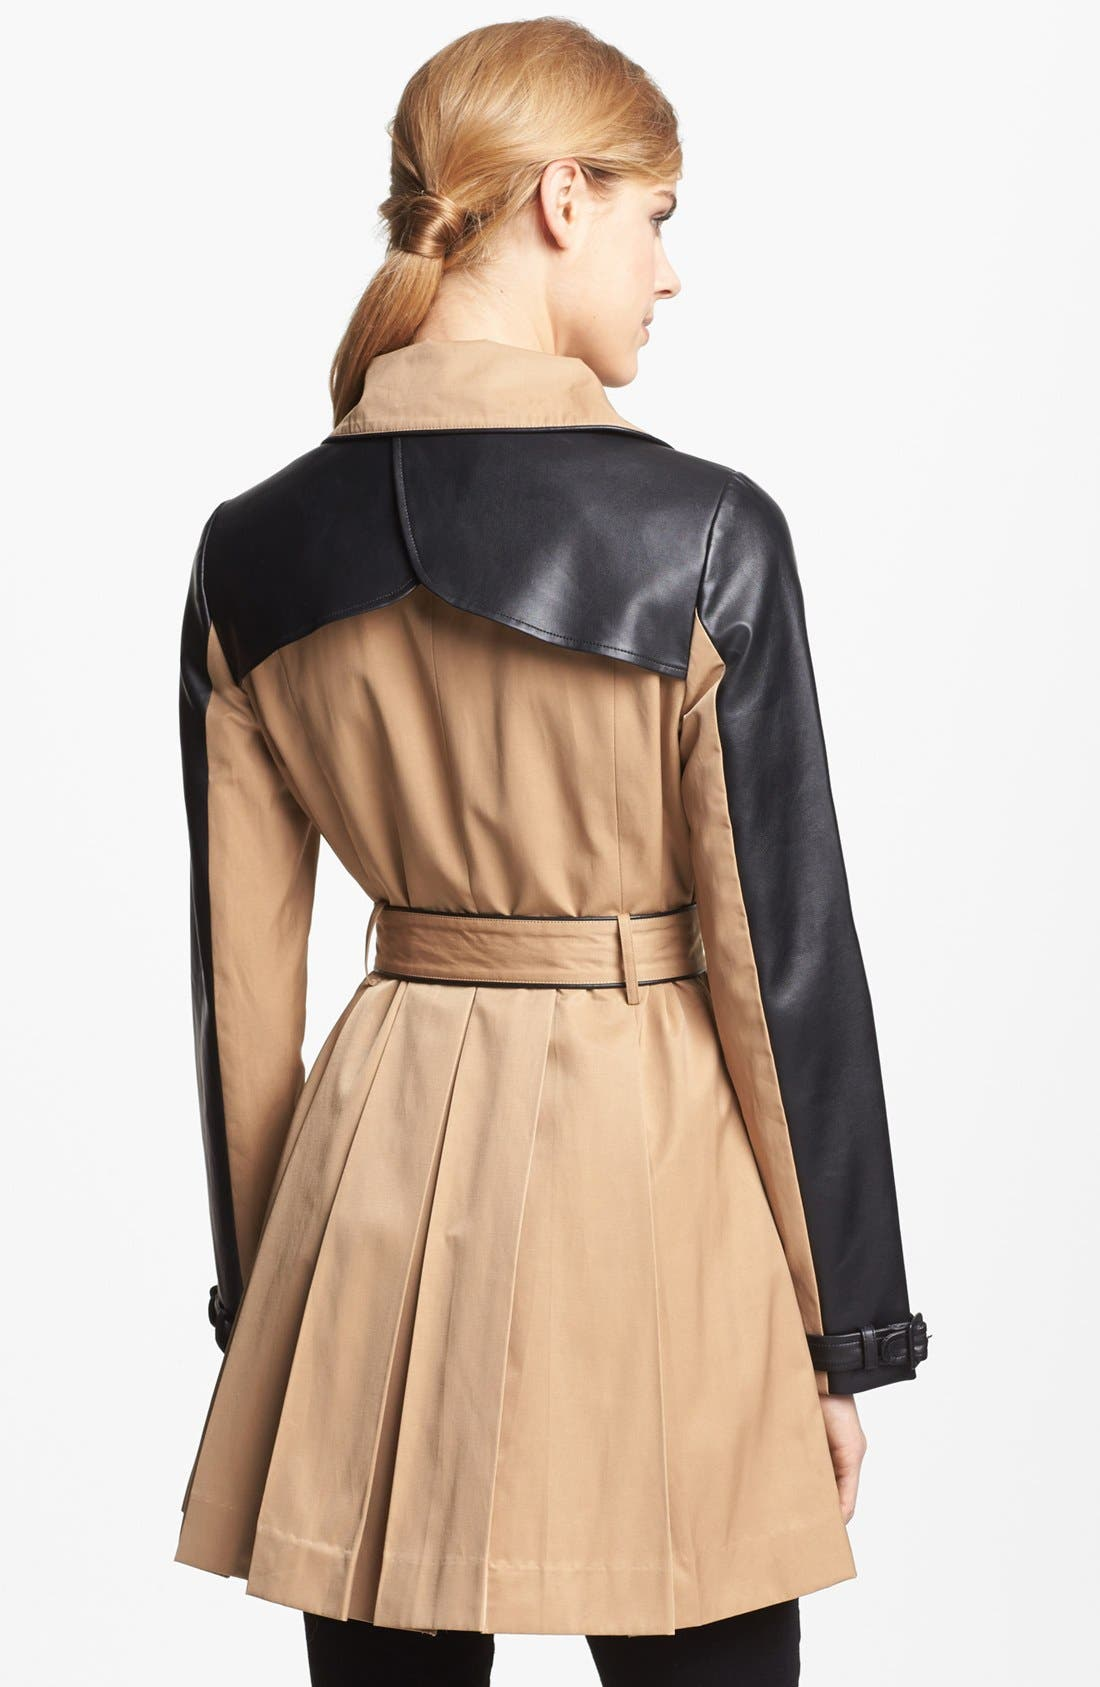 BEBE, Faux Leather Trim Trench Coat, Alternate thumbnail 2, color, 250